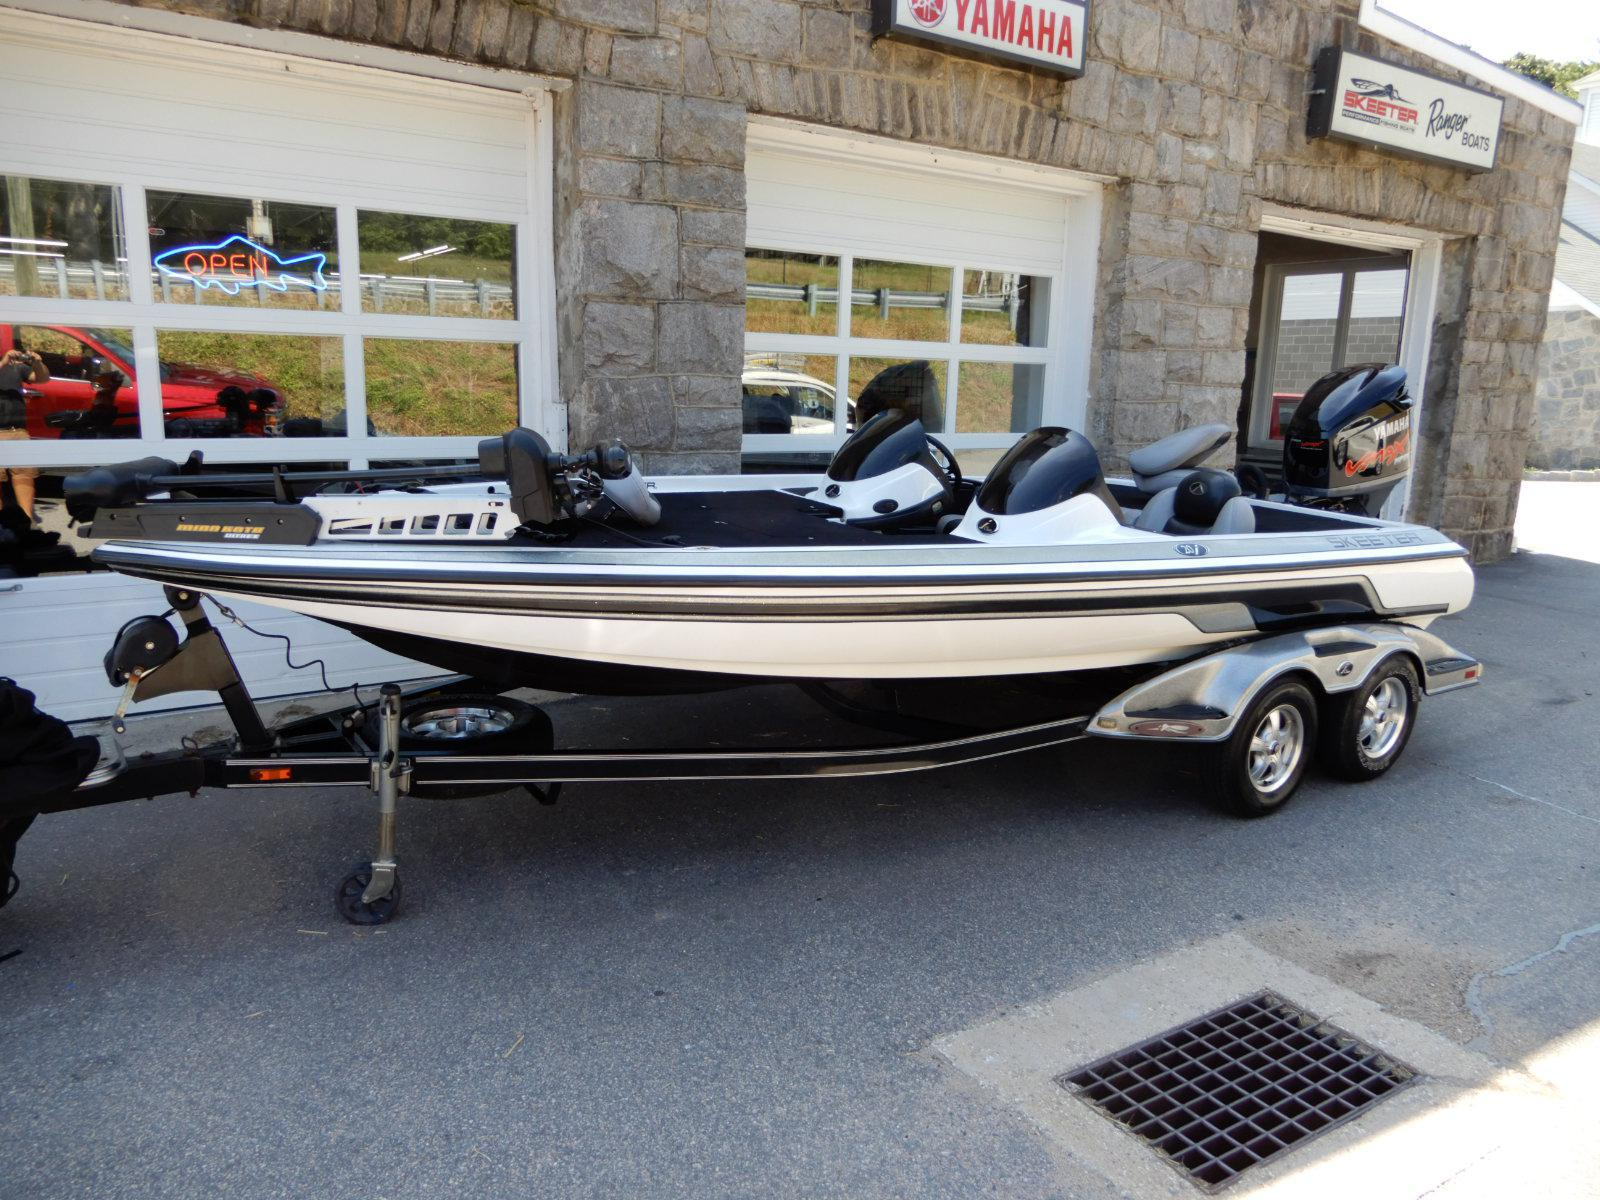 Inventory Reynolds' Boats Lyme, CT (800) 899-0028